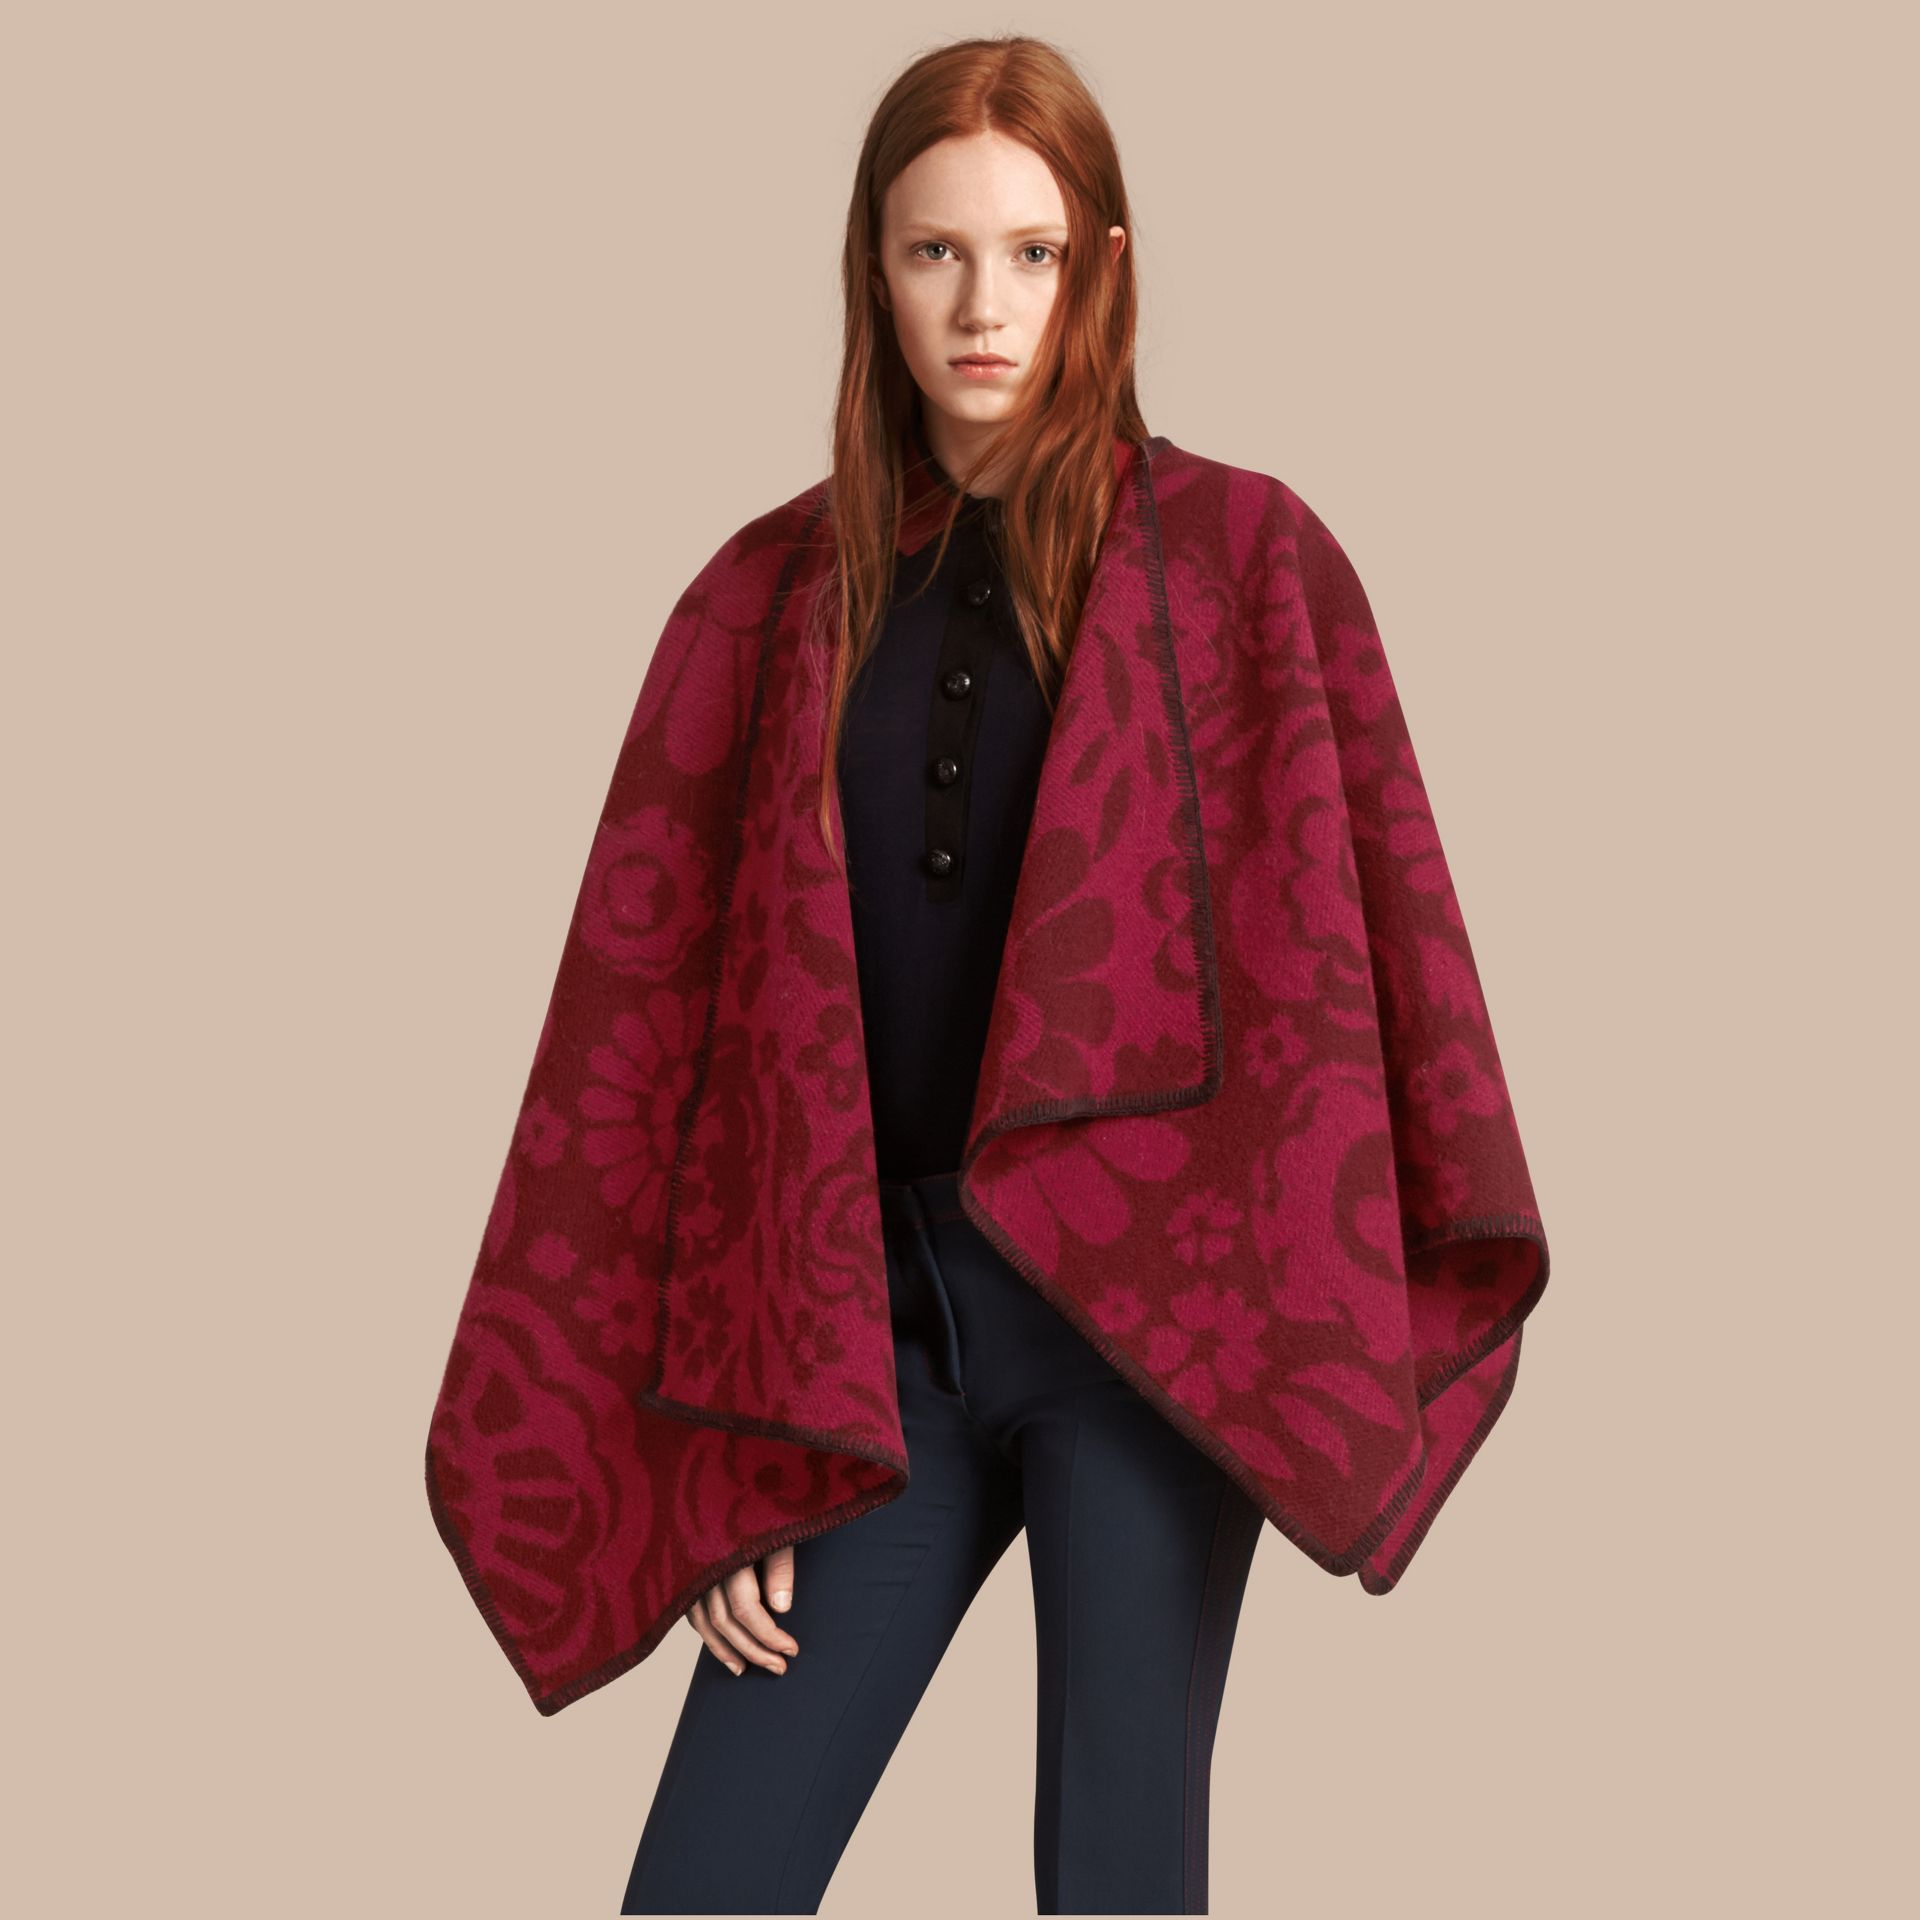 Plum Floral Jacquard Wool Cashmere Poncho - gallery image 1